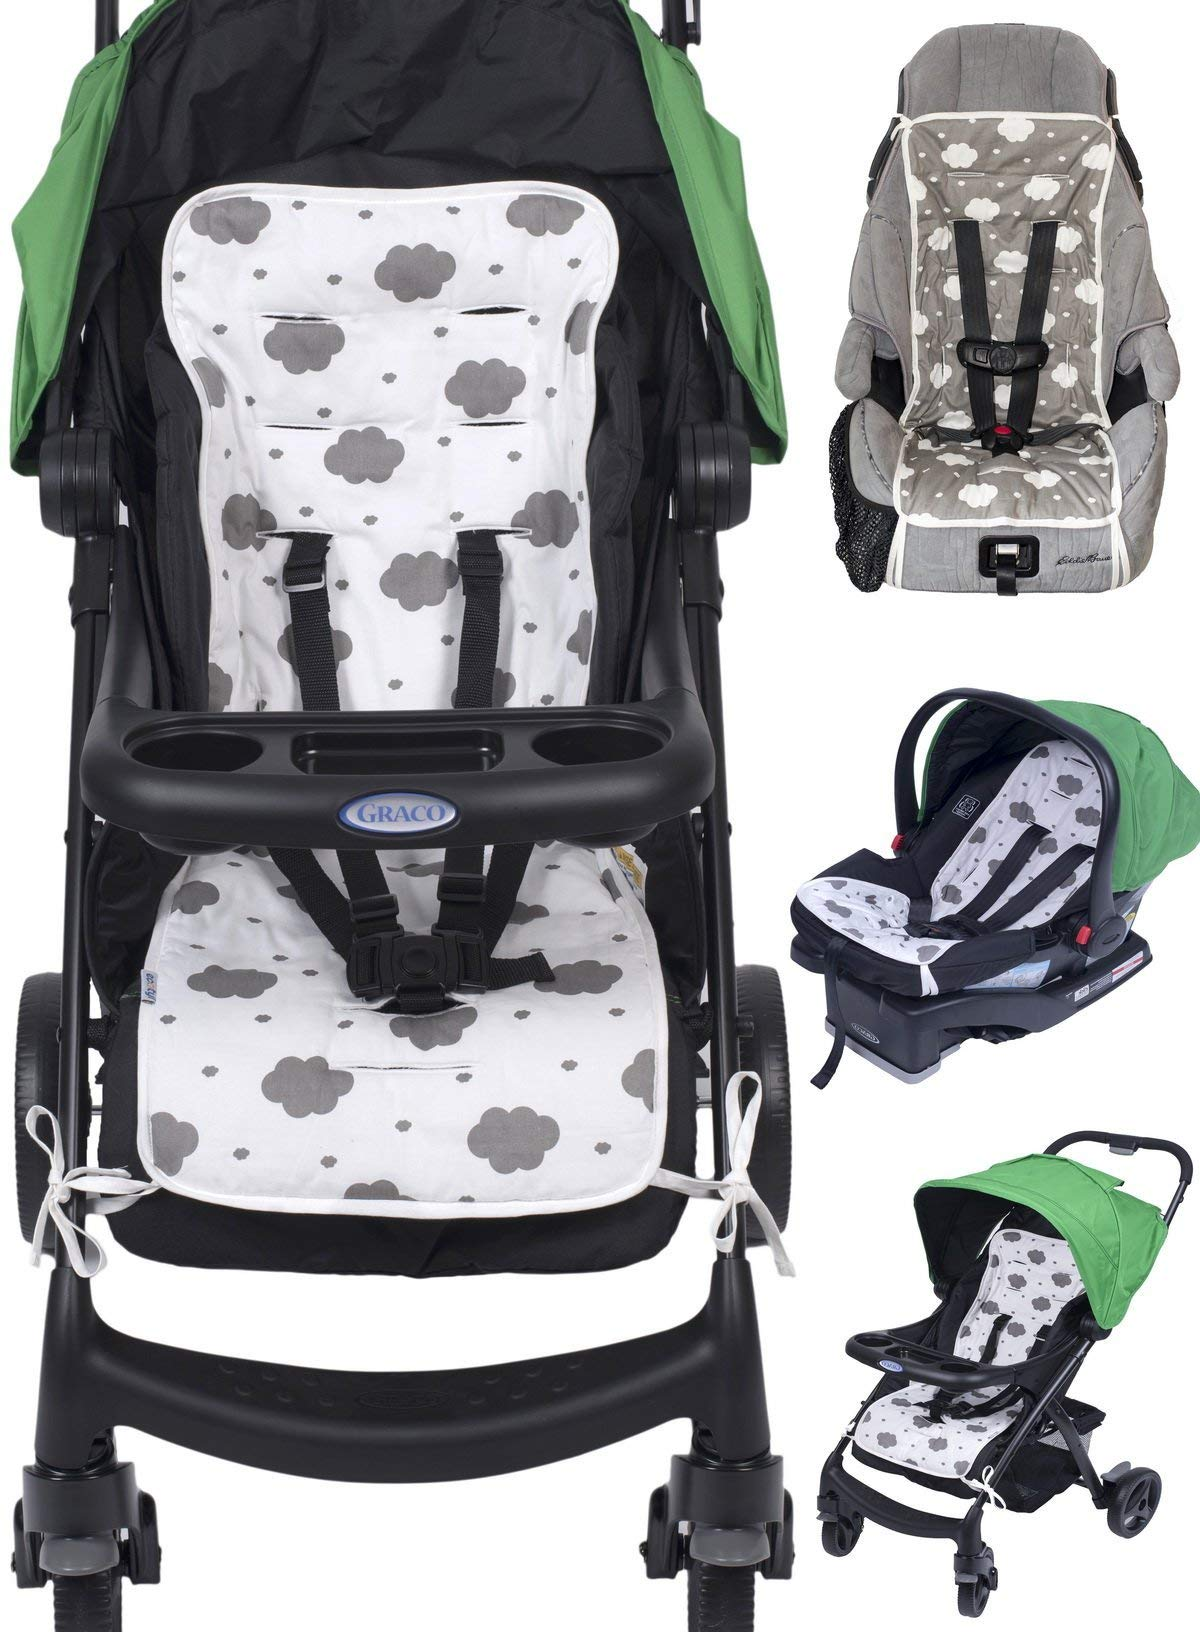 Reversible Pure Cotton Universal Baby Seat Liner for Stroller, Car Seat, Jogger, Bouncer | Thick Cushion | Supports Newborns, Infants, and Toddlers | Quick and Easy Install by Ecotyl